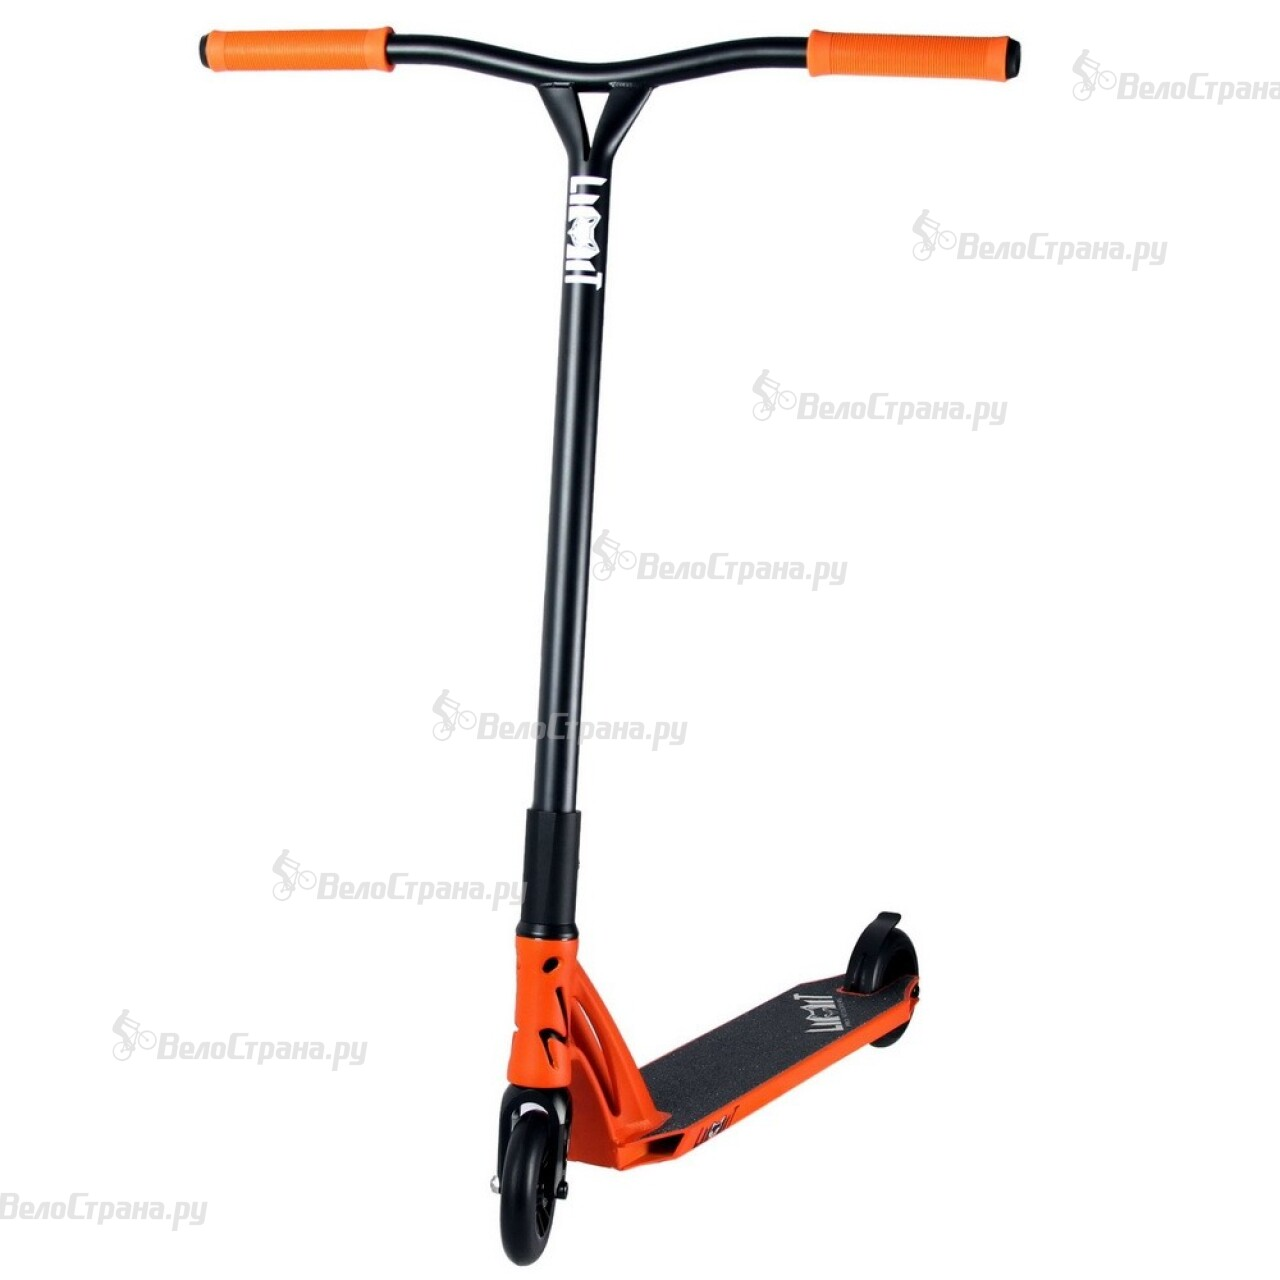 Самокат Limit LMT06 PRO STUNT SCOOTER limit lmt 06 pro stunt scooter